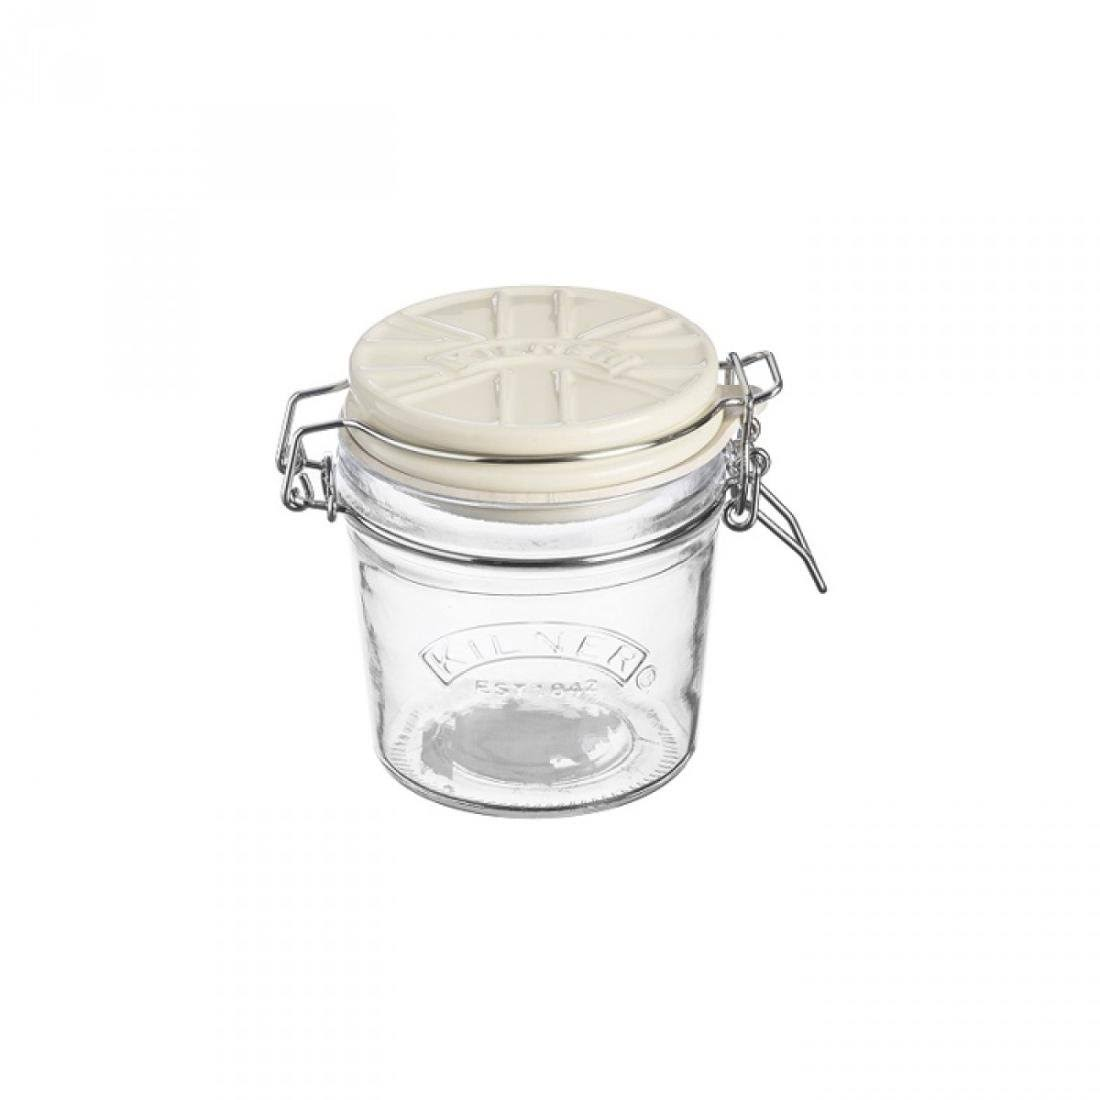 Kilner 0.35 Litre White Ceramic Lid Clip Top Jar